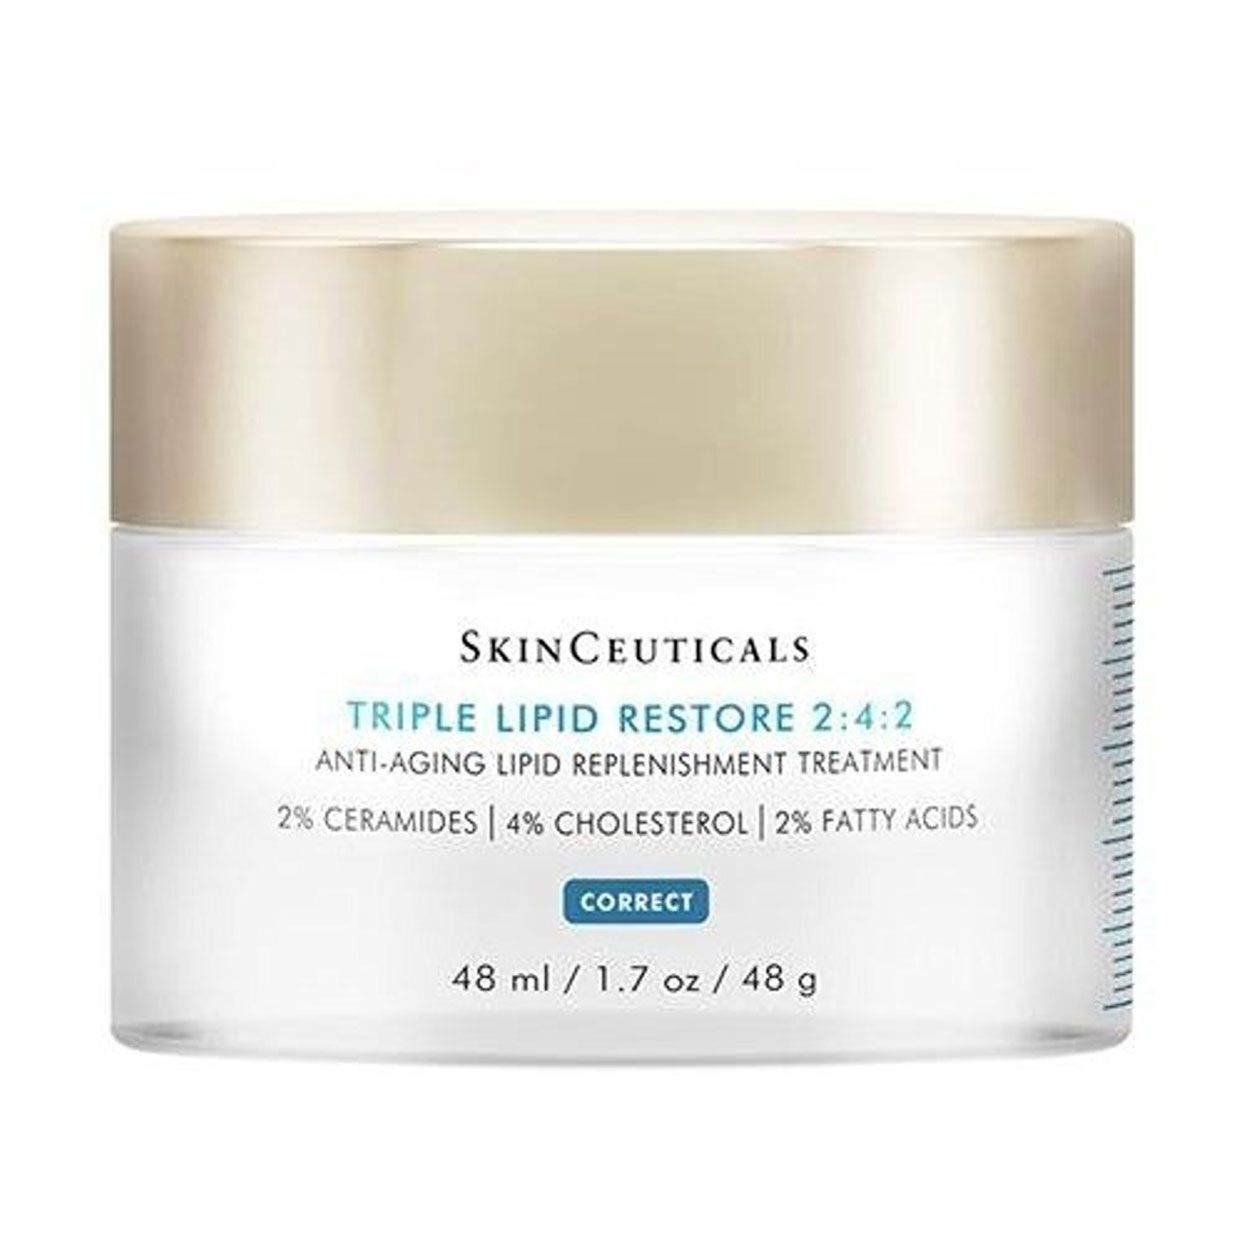 The Best Neck Creams According To Top Derms In 2020 Anti Aging Wrinkle Creams Moisturizer For Dry Skin Best Neck Cream